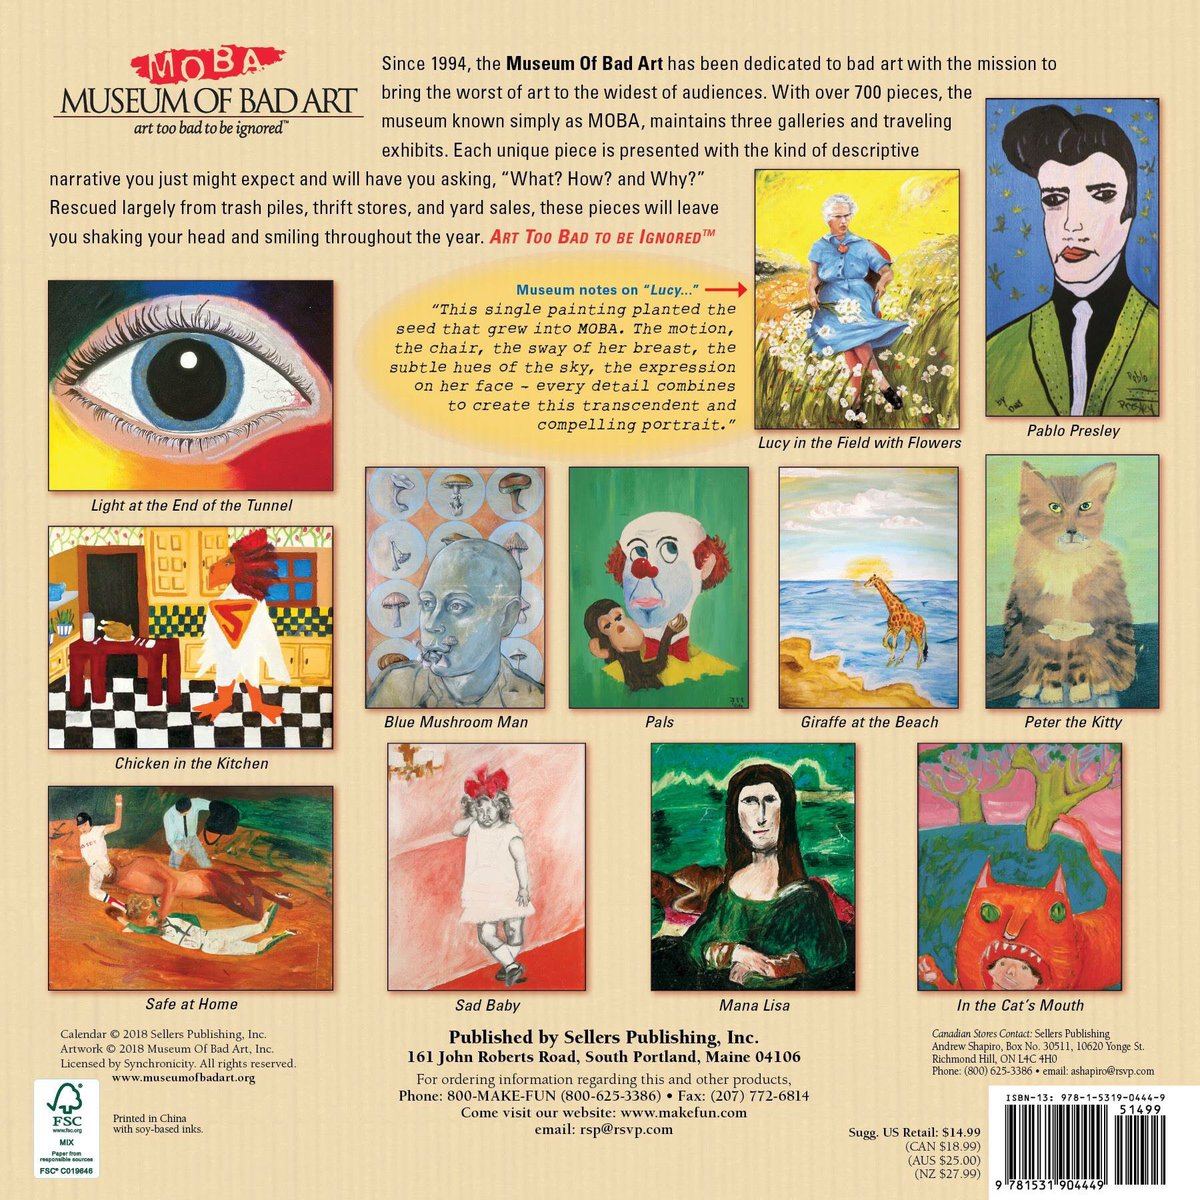 Here's The Museum Of Bad Art 2019 wall calendar! Rescued from thrift stores  & yard sales, these unique pieces include descriptive narratives. ...